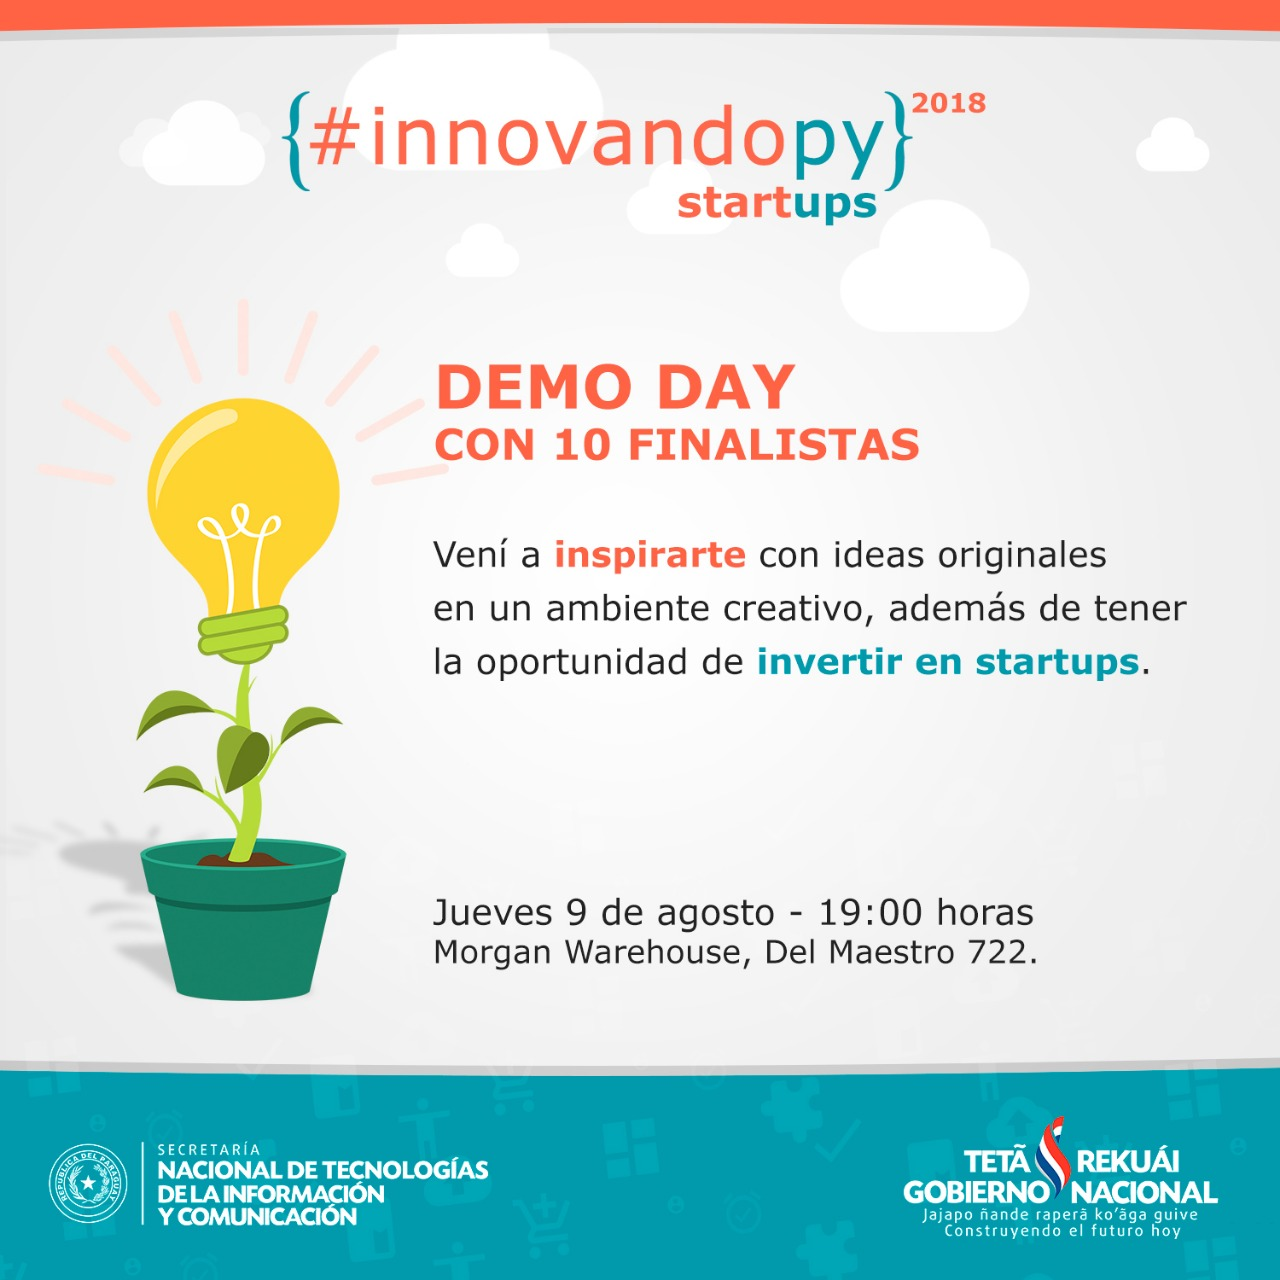 WhatsApp_Image_2018-08-06_at_15.01.35.jpeg